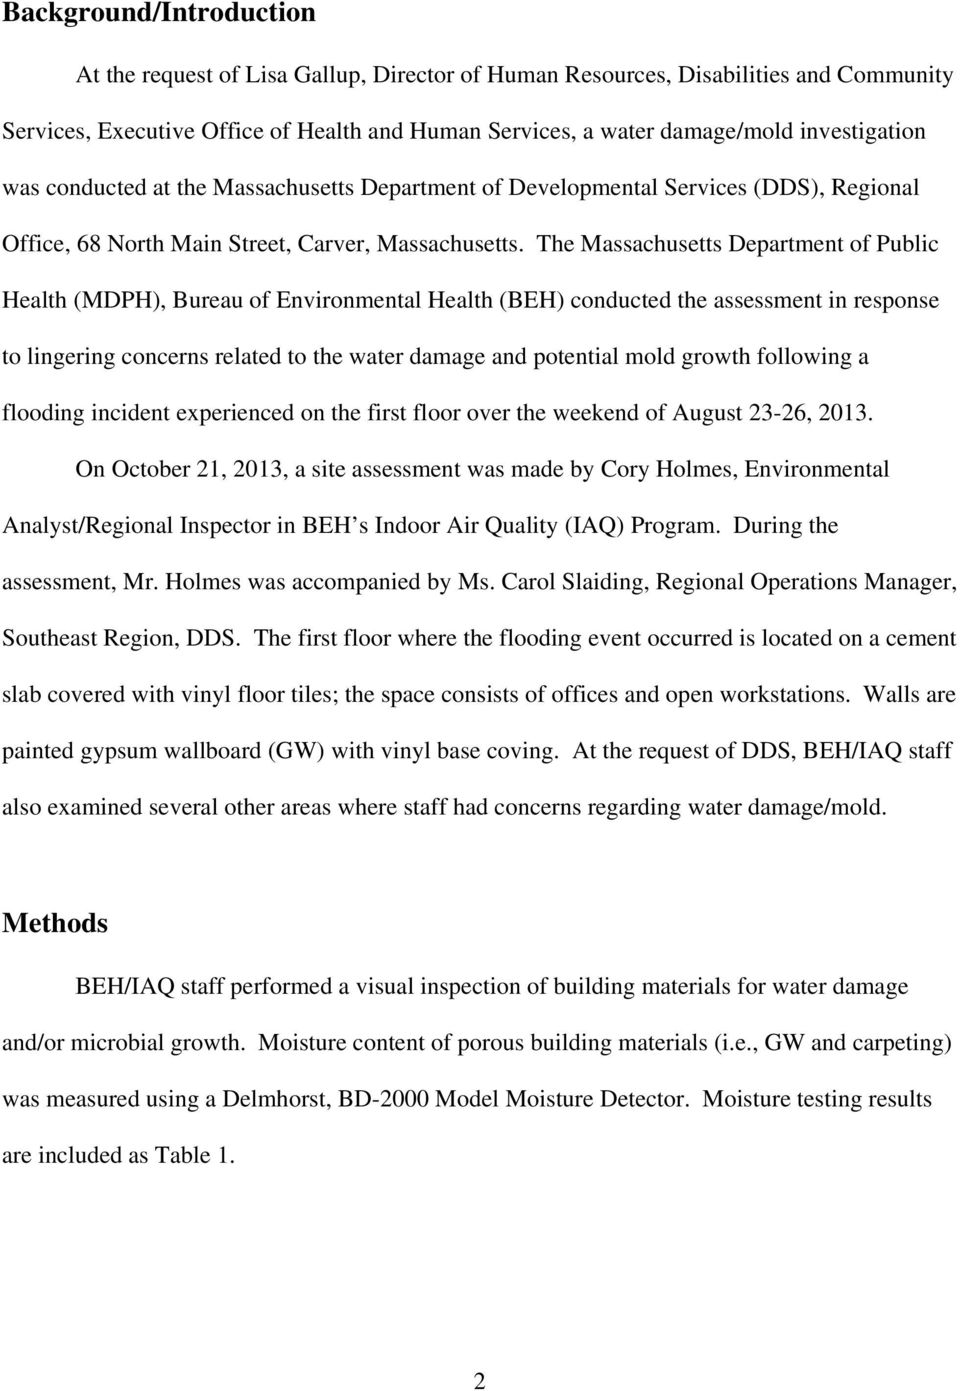 The Massachusetts Department of Public Health (MDPH), Bureau of Environmental Health (BEH) conducted the assessment in response to lingering concerns related to the water damage and potential mold